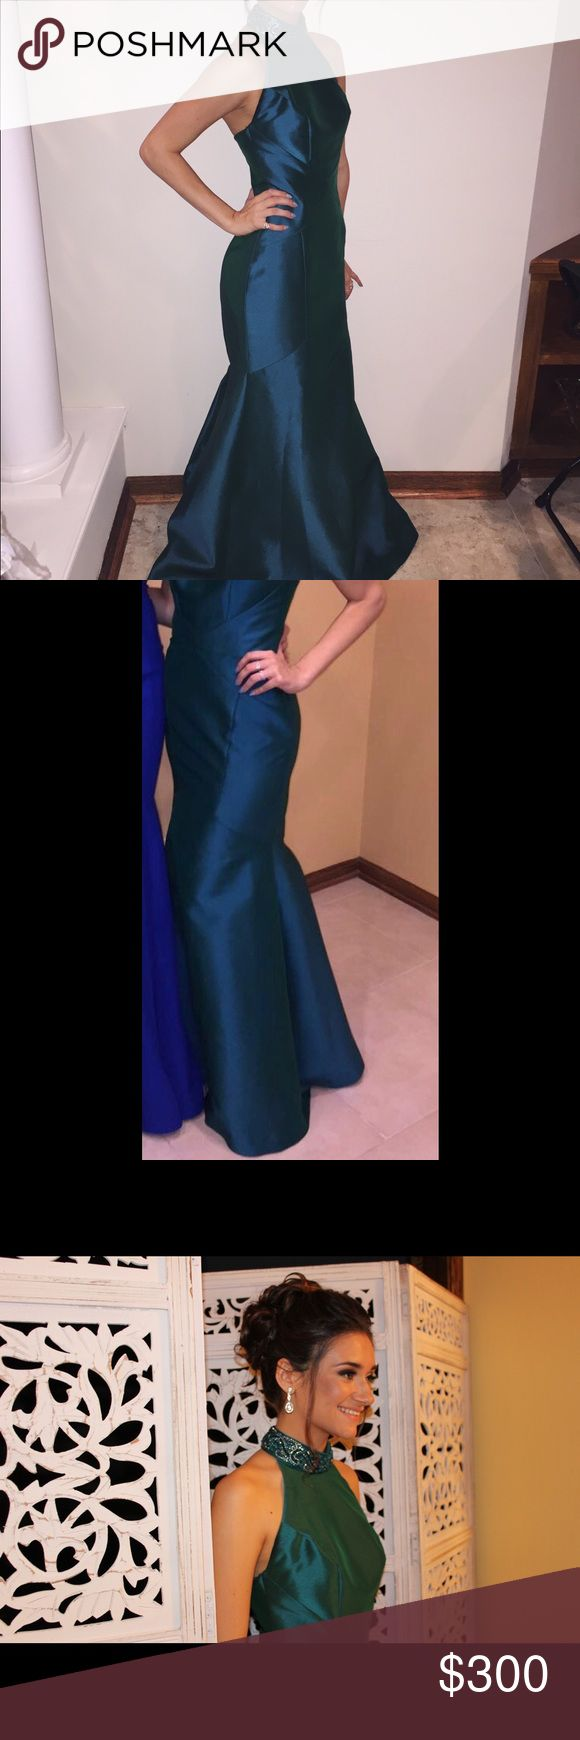 Neiman Marcus emerald green dress Beautiful gown metallic emerald green dress, worn once before, in perfect condition was bought at a size 2 and was altered to a size 0 to fit me. Has an open back. I am 5'5'' was on sale from $995 and bought it for $650 Neiman Marcus Dresses Prom